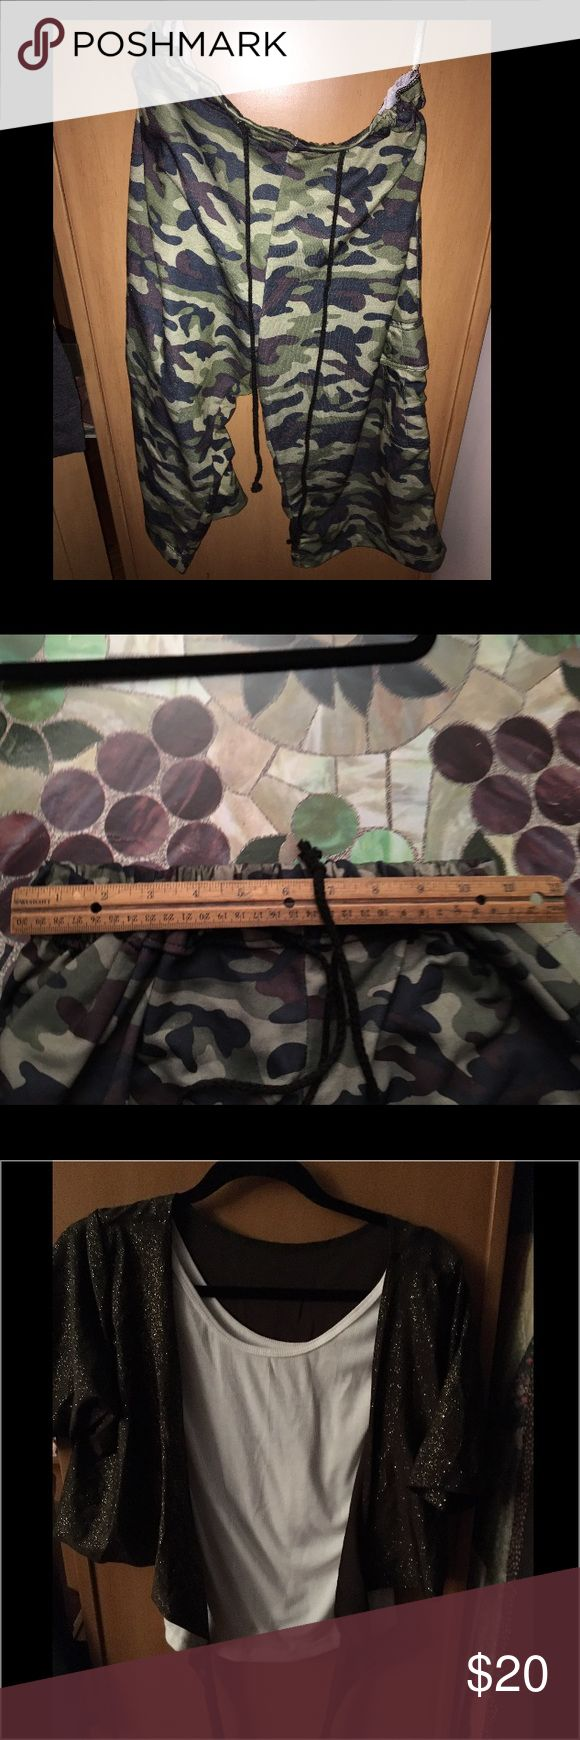 Hip hop costume size chart  XLA Camouflage outfit dance worn once Costumes Dance